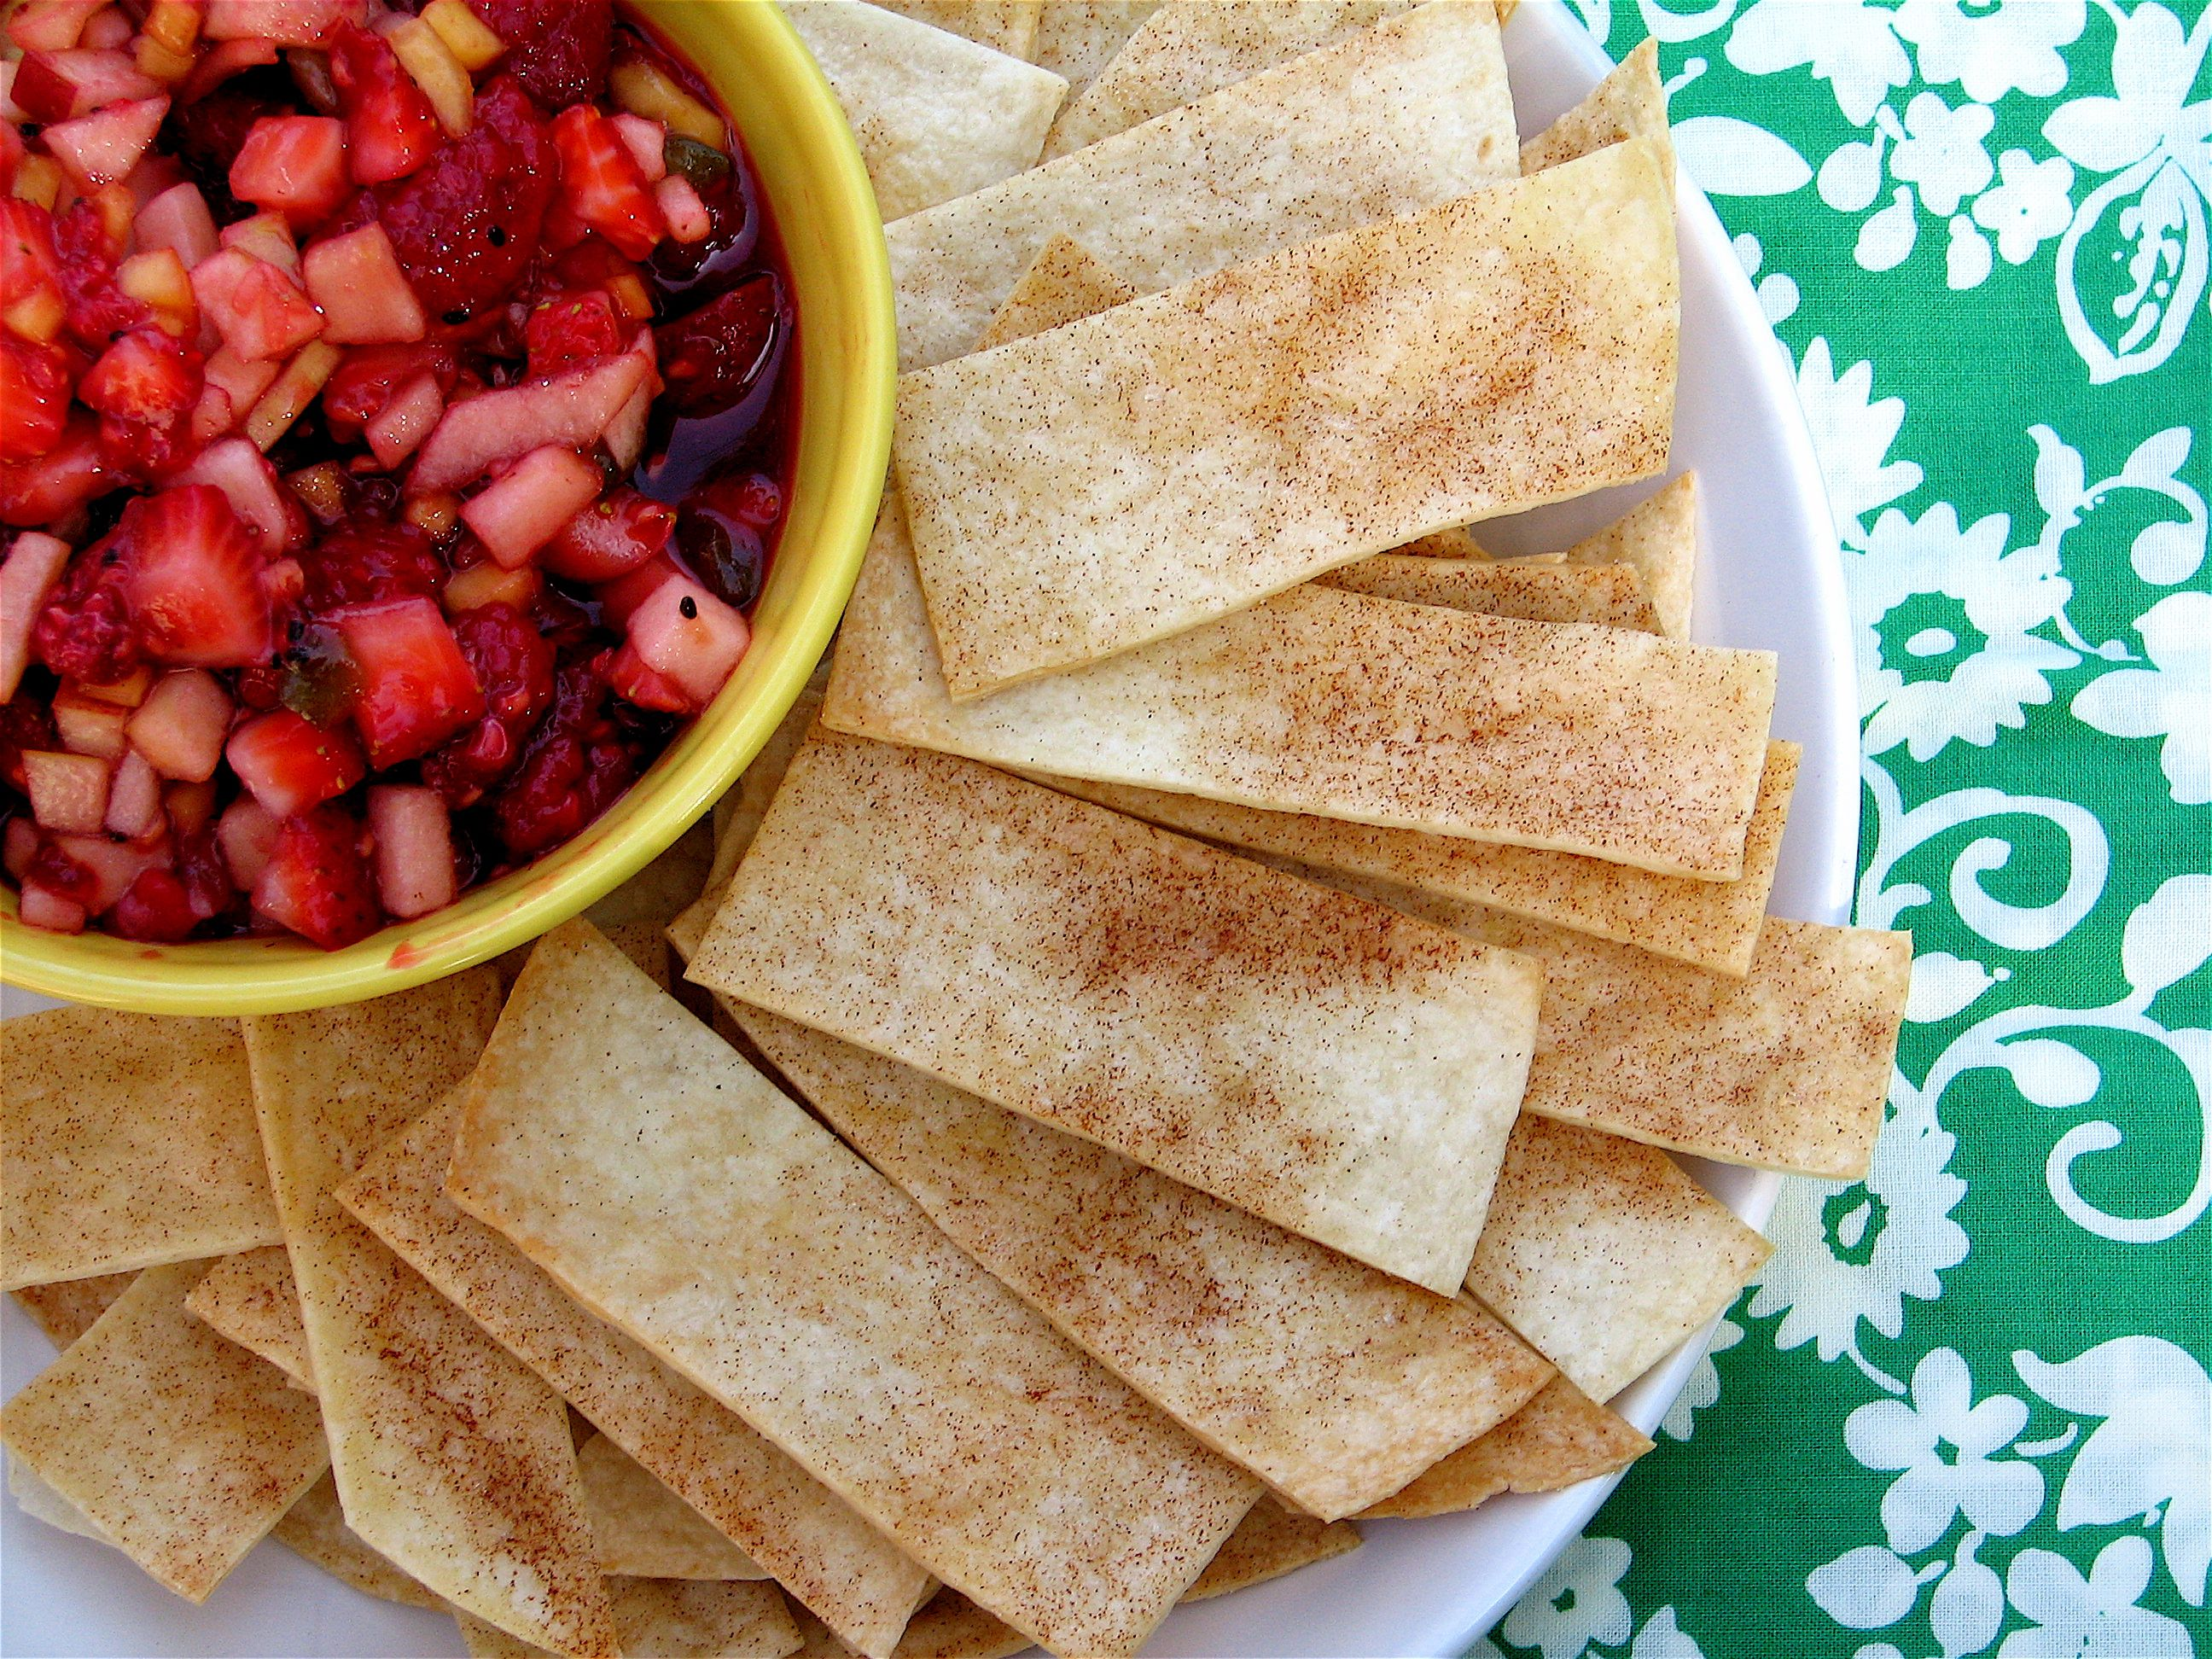 Fruit salsa with cinnamon chips--one of my fav dishes ever:) Reminds me of summer and light and easy cooking!